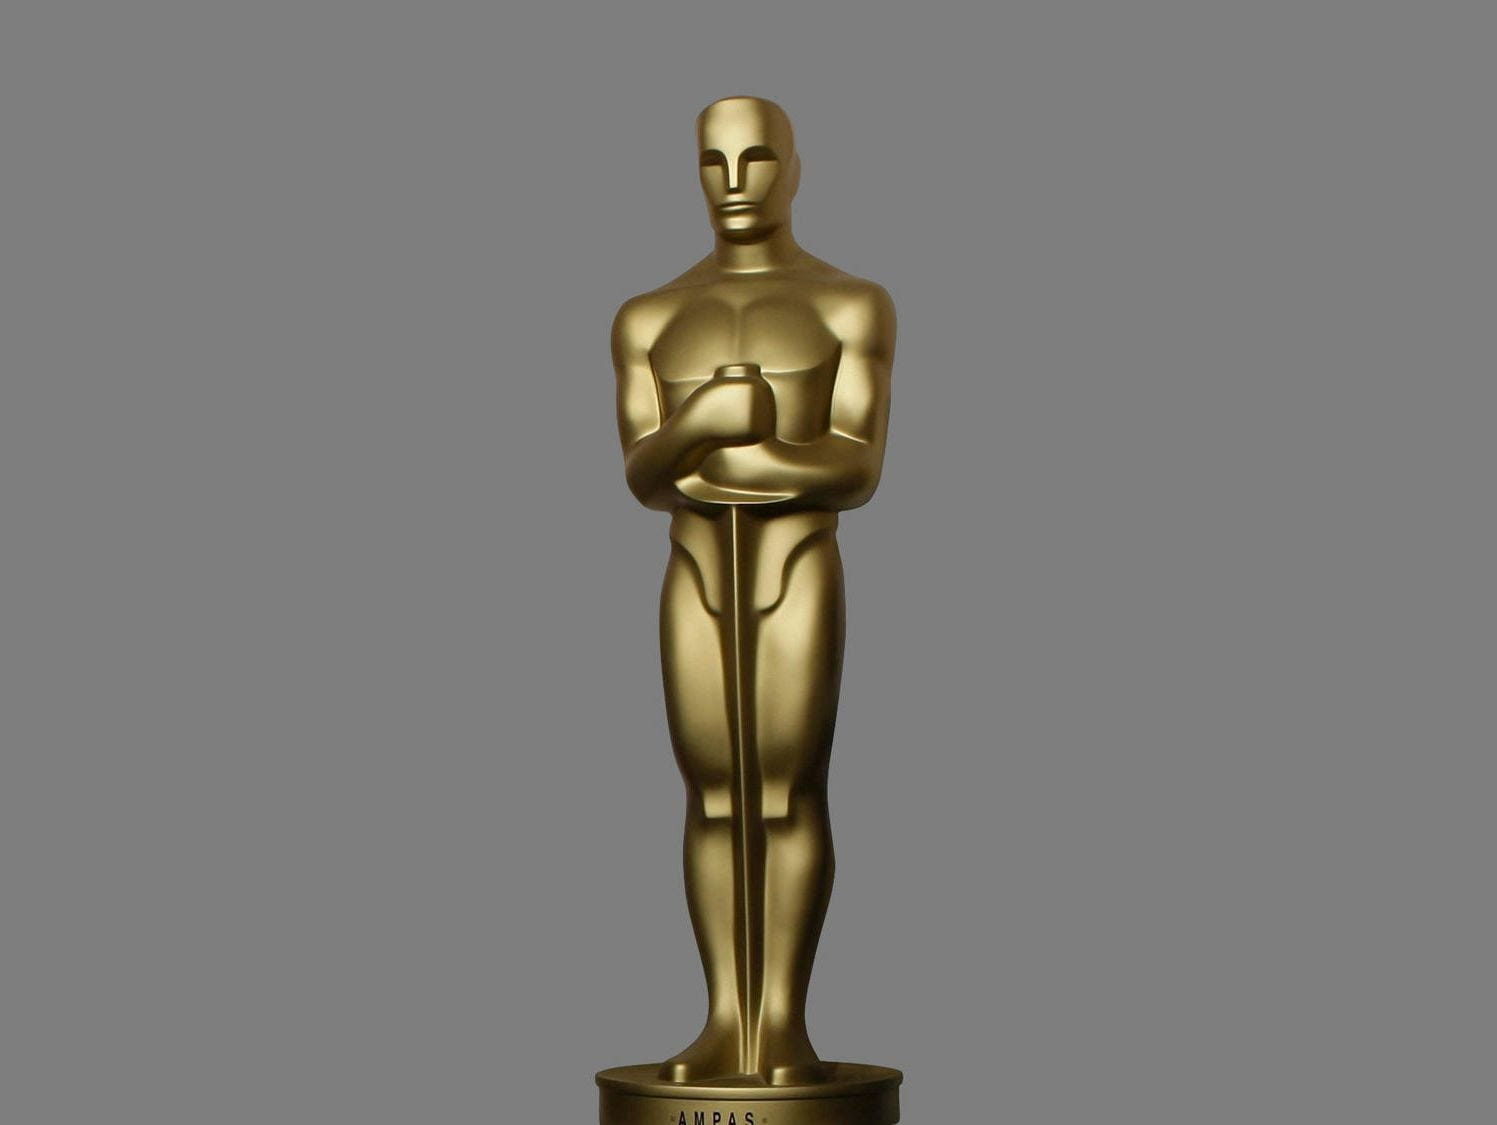 South Jersey native Julia Reichert is now the proud owner of an Academy Award. The 1964 graduate of Bordentown Regional High School took home the Oscar for Best Documentary Feature for 'American Factory,' which she co-directed and produced.